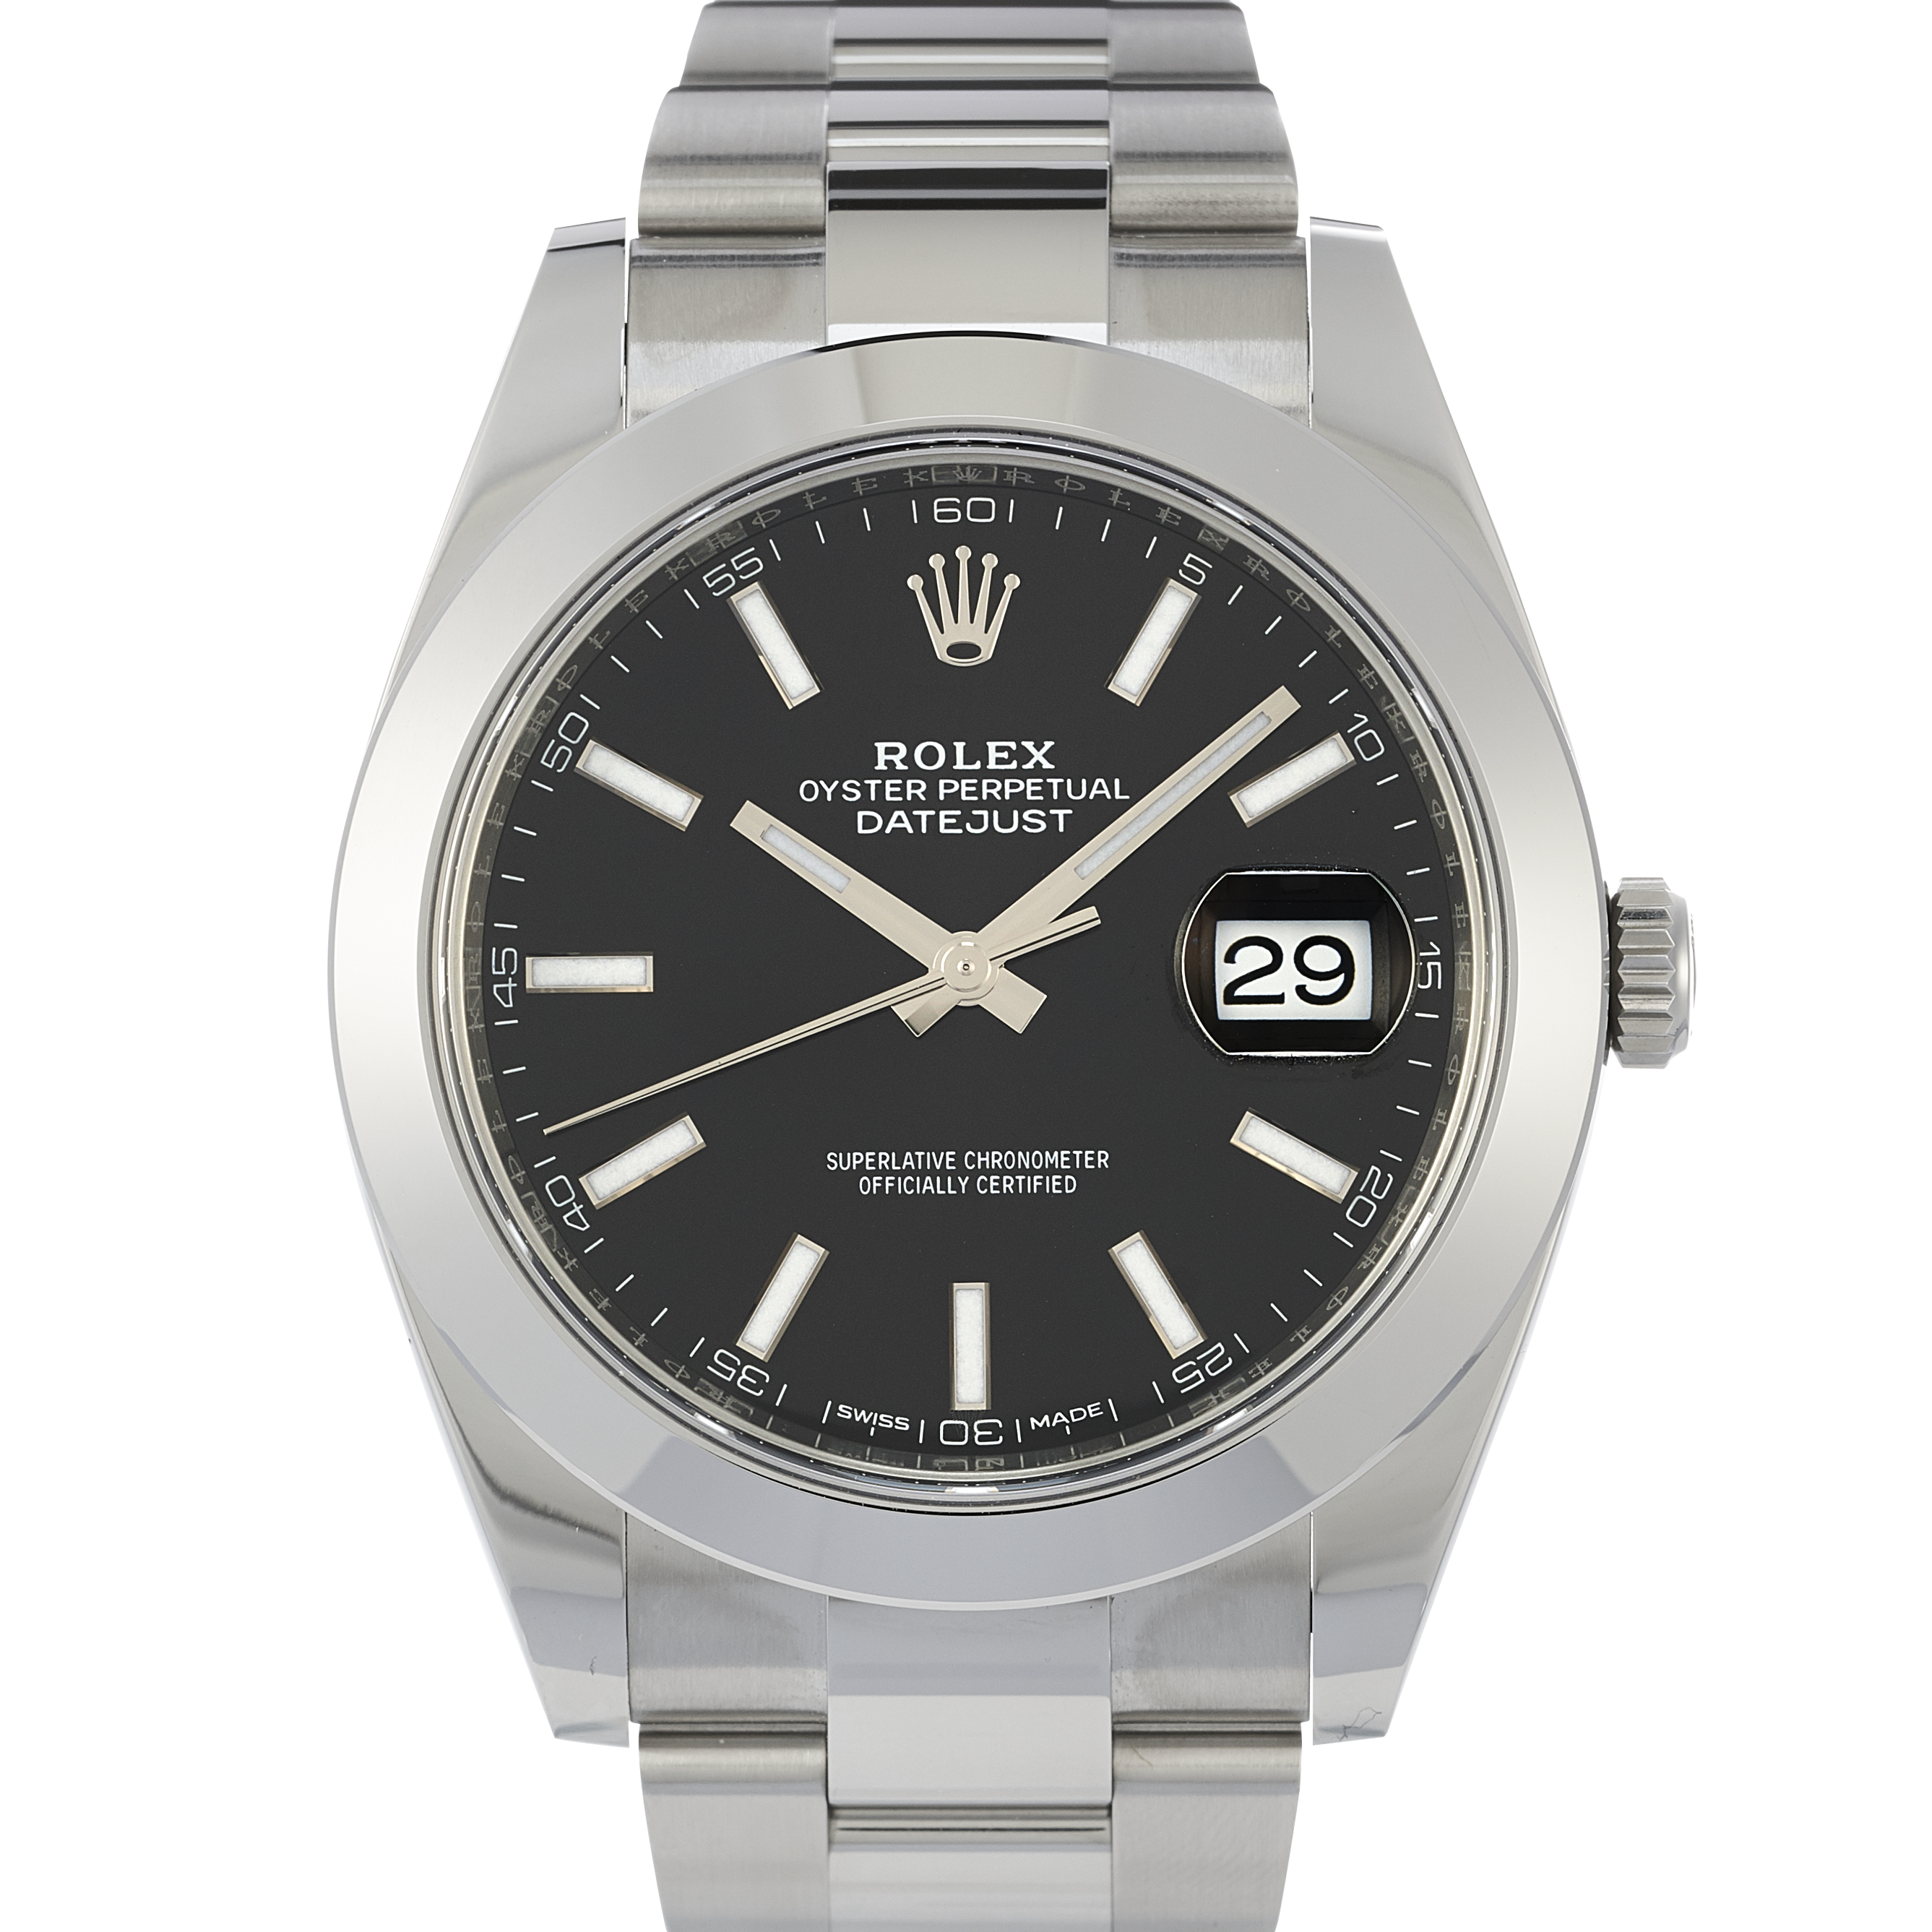 Rolex Watches for Sale Offerings and Prices